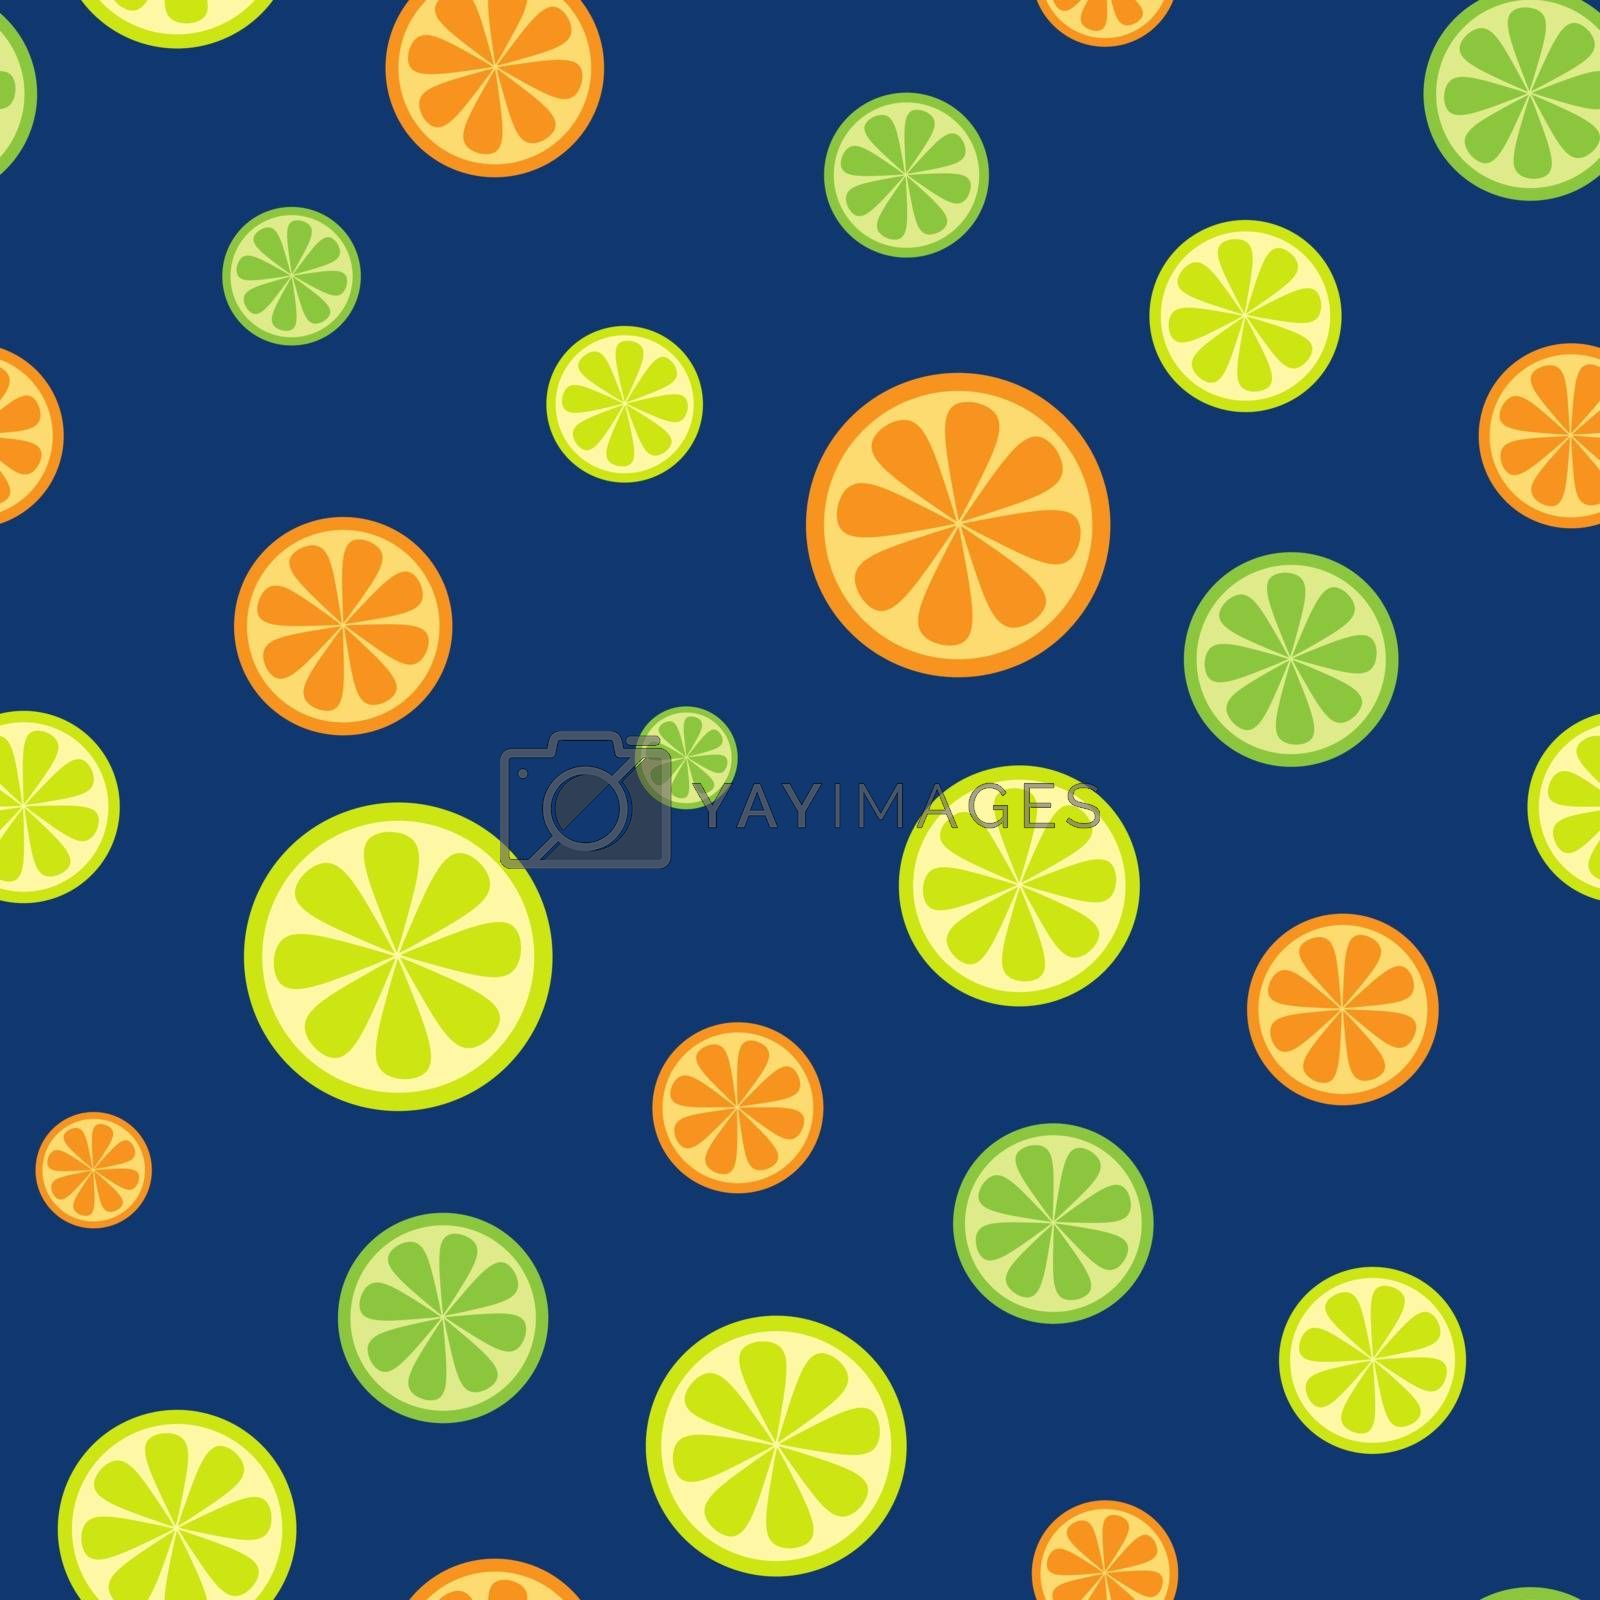 Simple seamless pattern with citrus fruits: oranges, limes and lemons